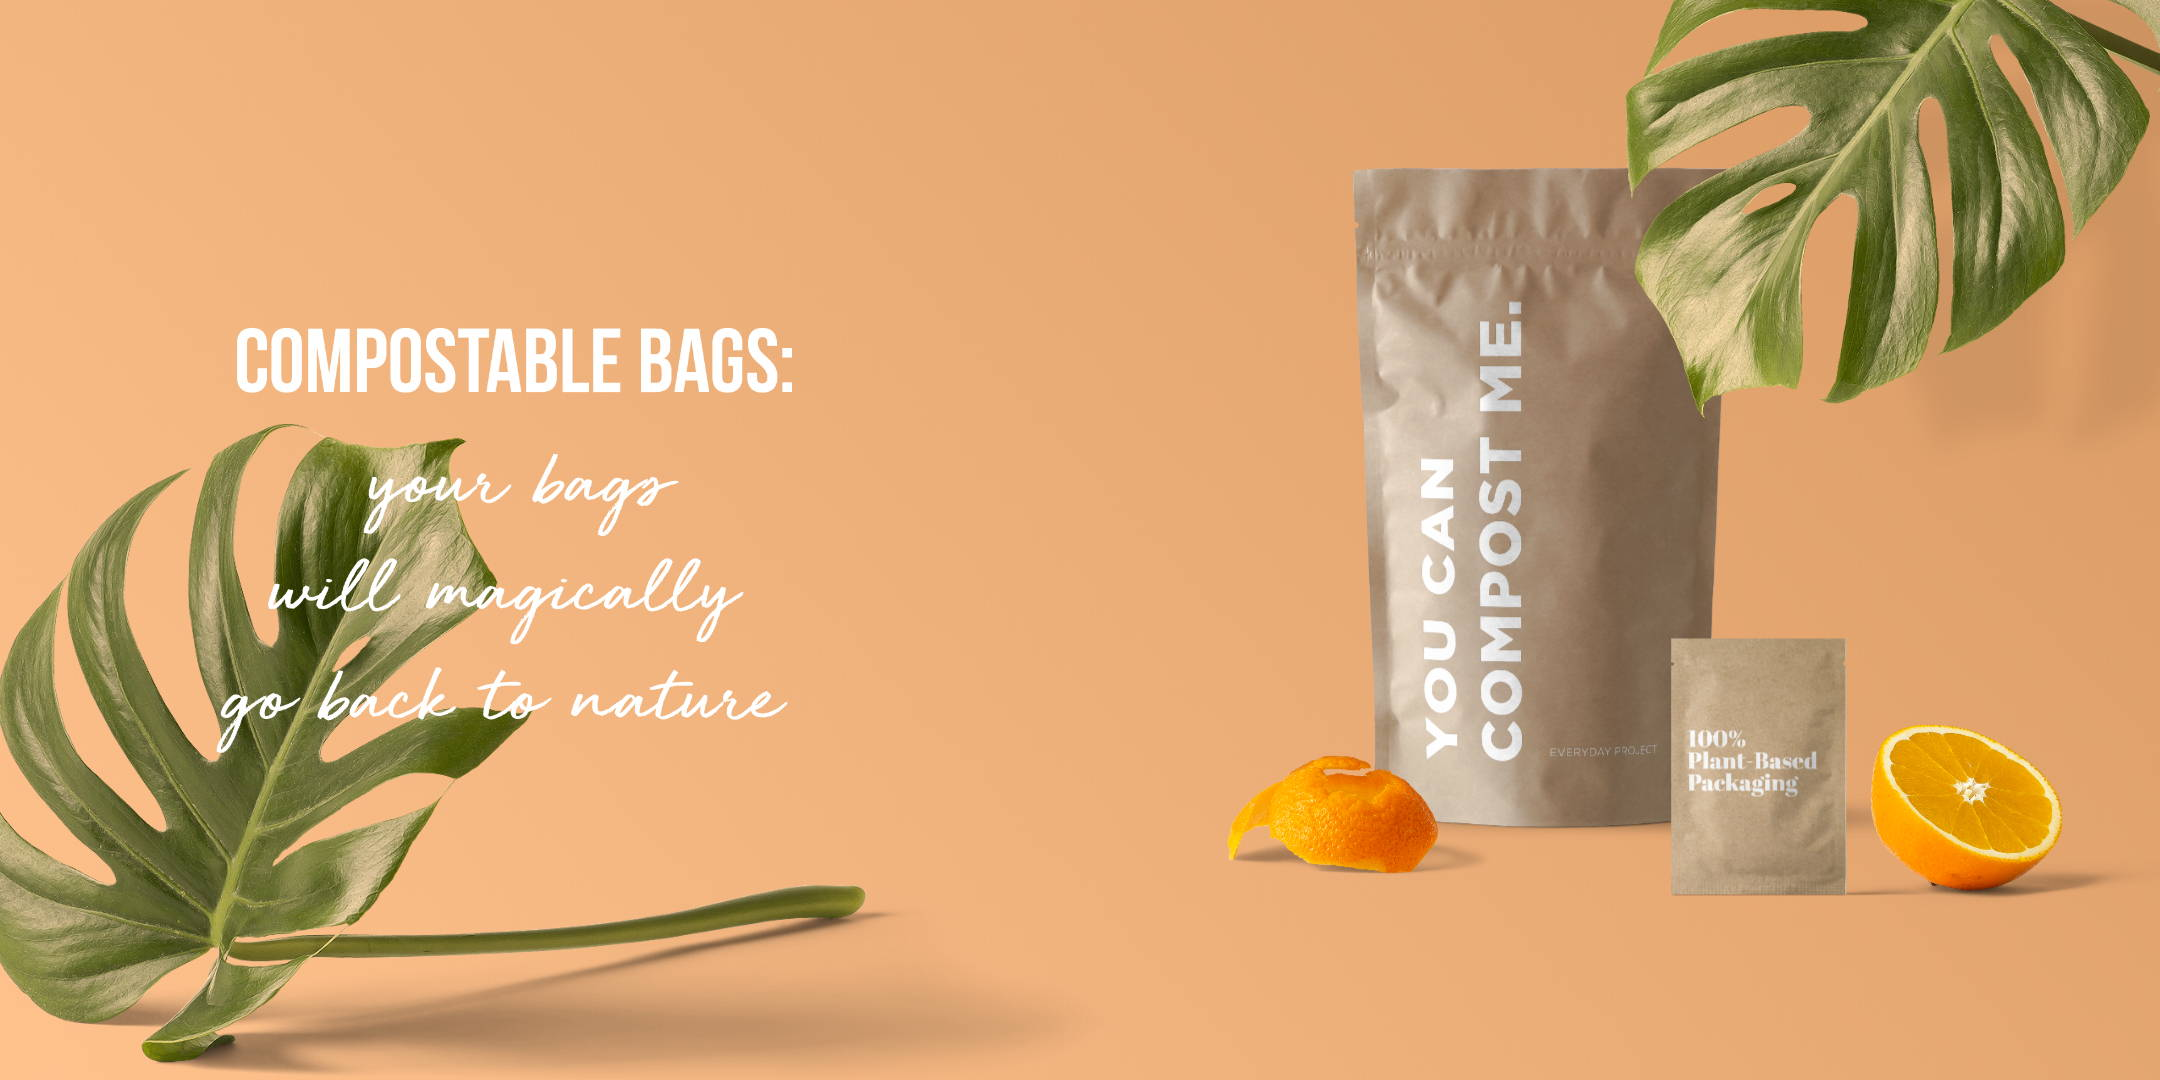 Biodegradable-compostable-packaging